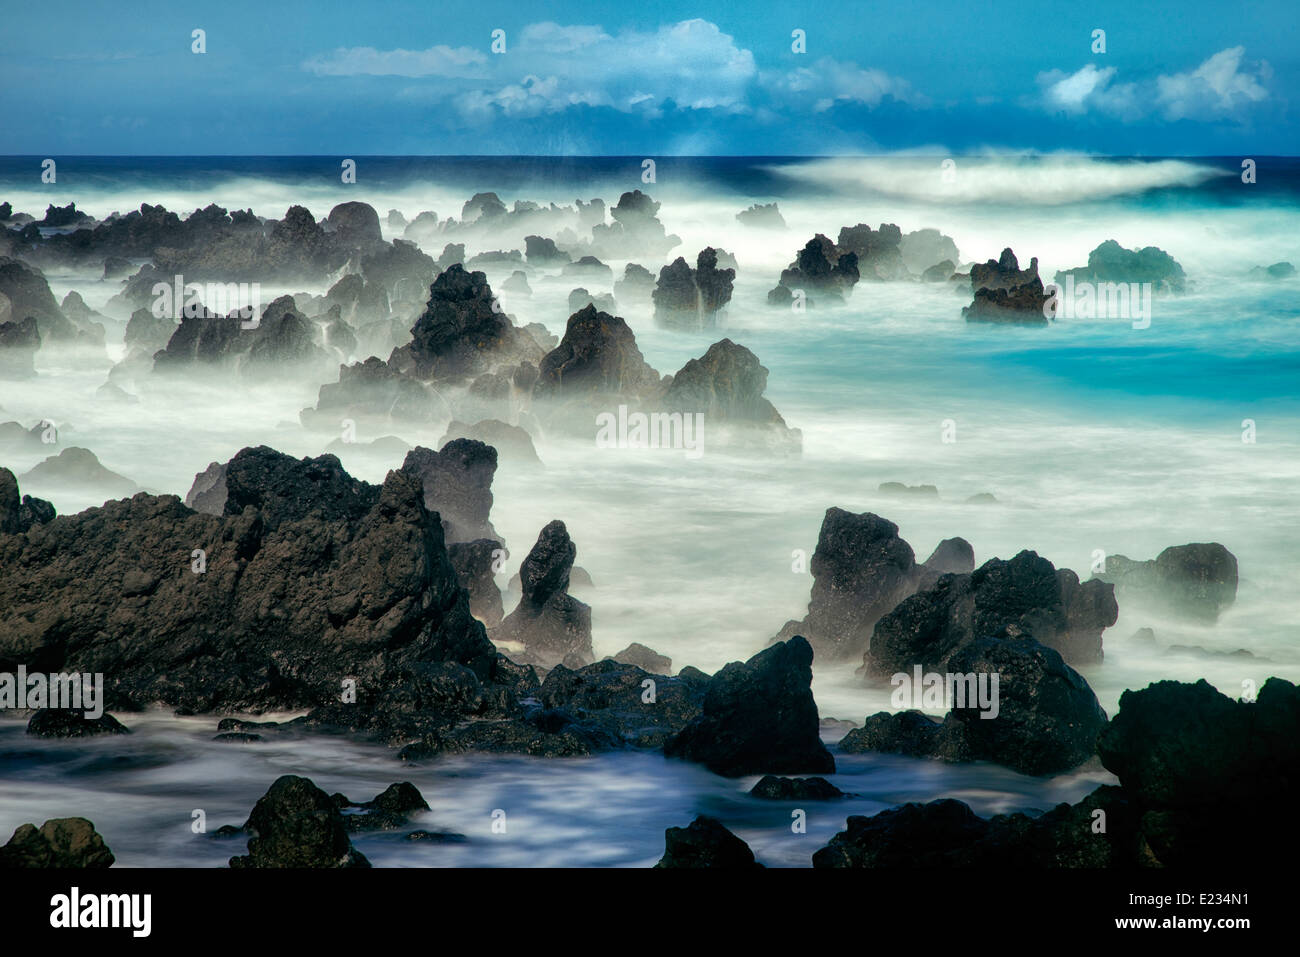 Volcanic seastacks with waves, Maui, Hawaii - Stock Image